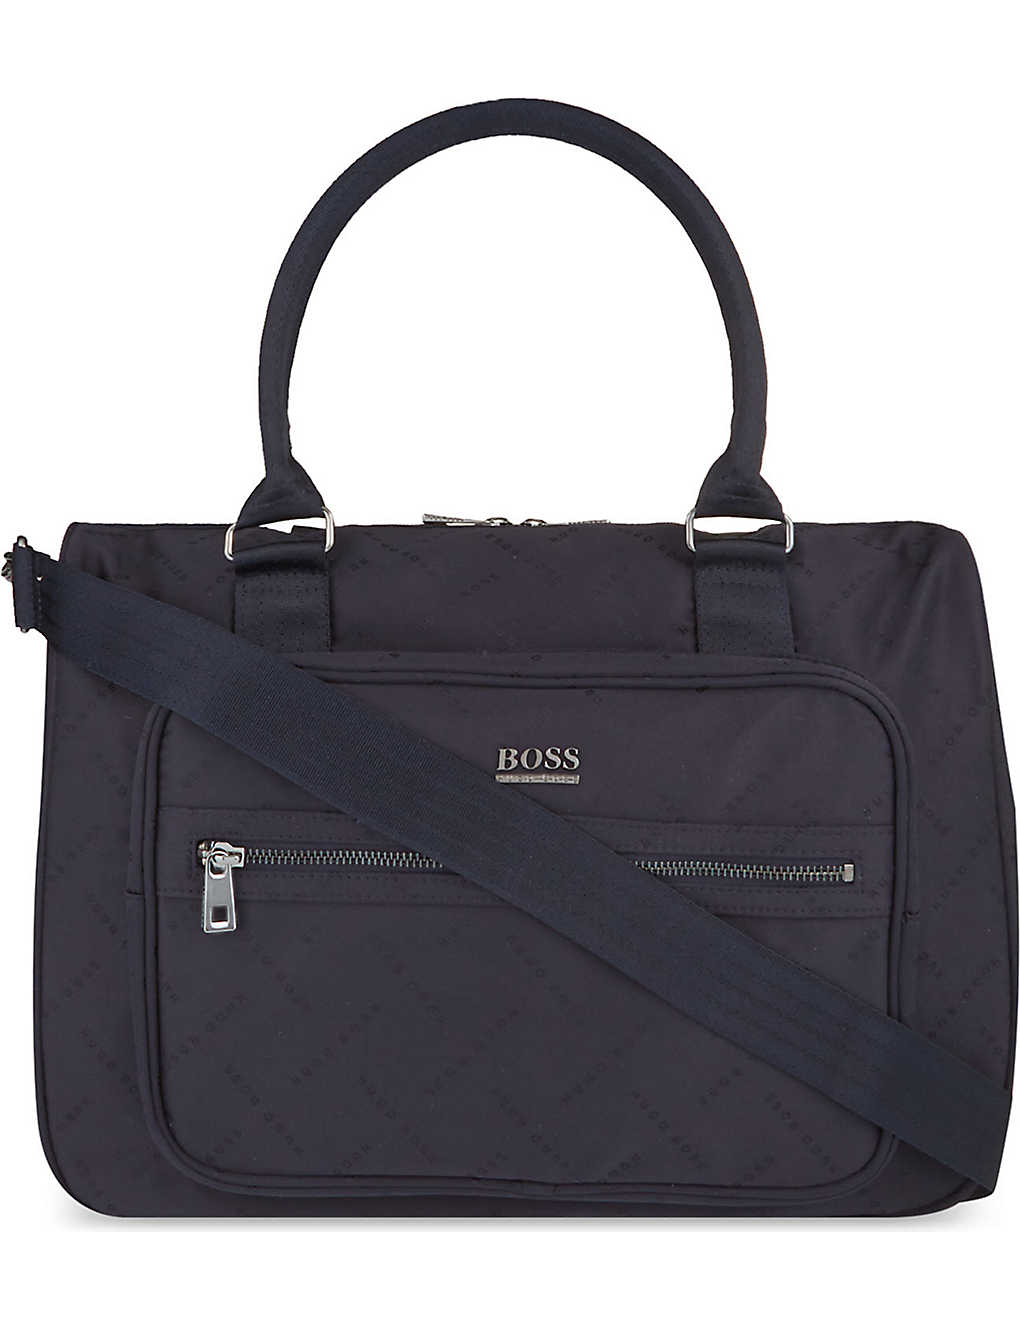 ea0dbfad3da BOSS - Large baby changing bag | Selfridges.com